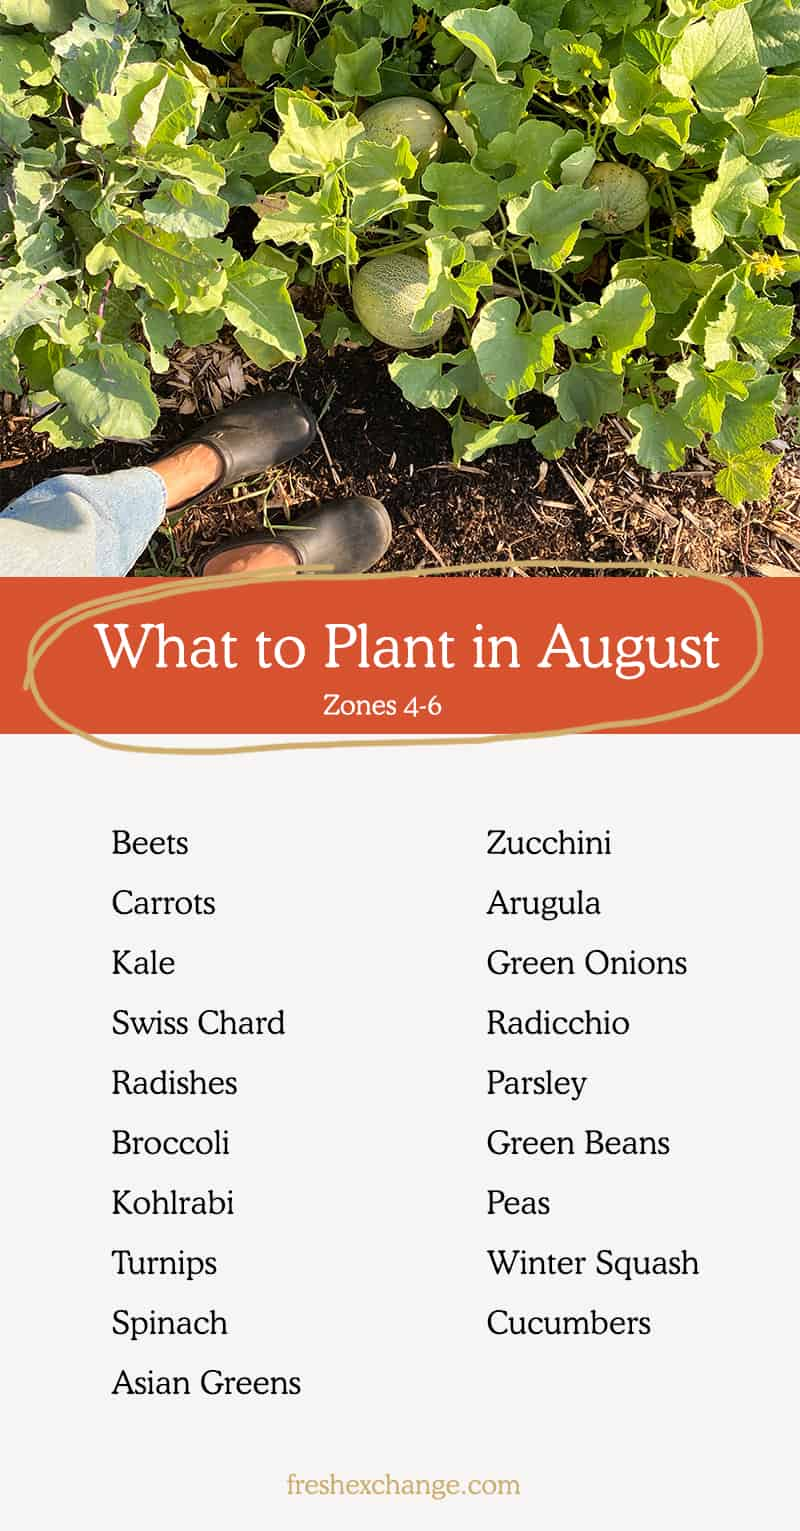 List of things you can plant in August in your garden. Including zones 4-6